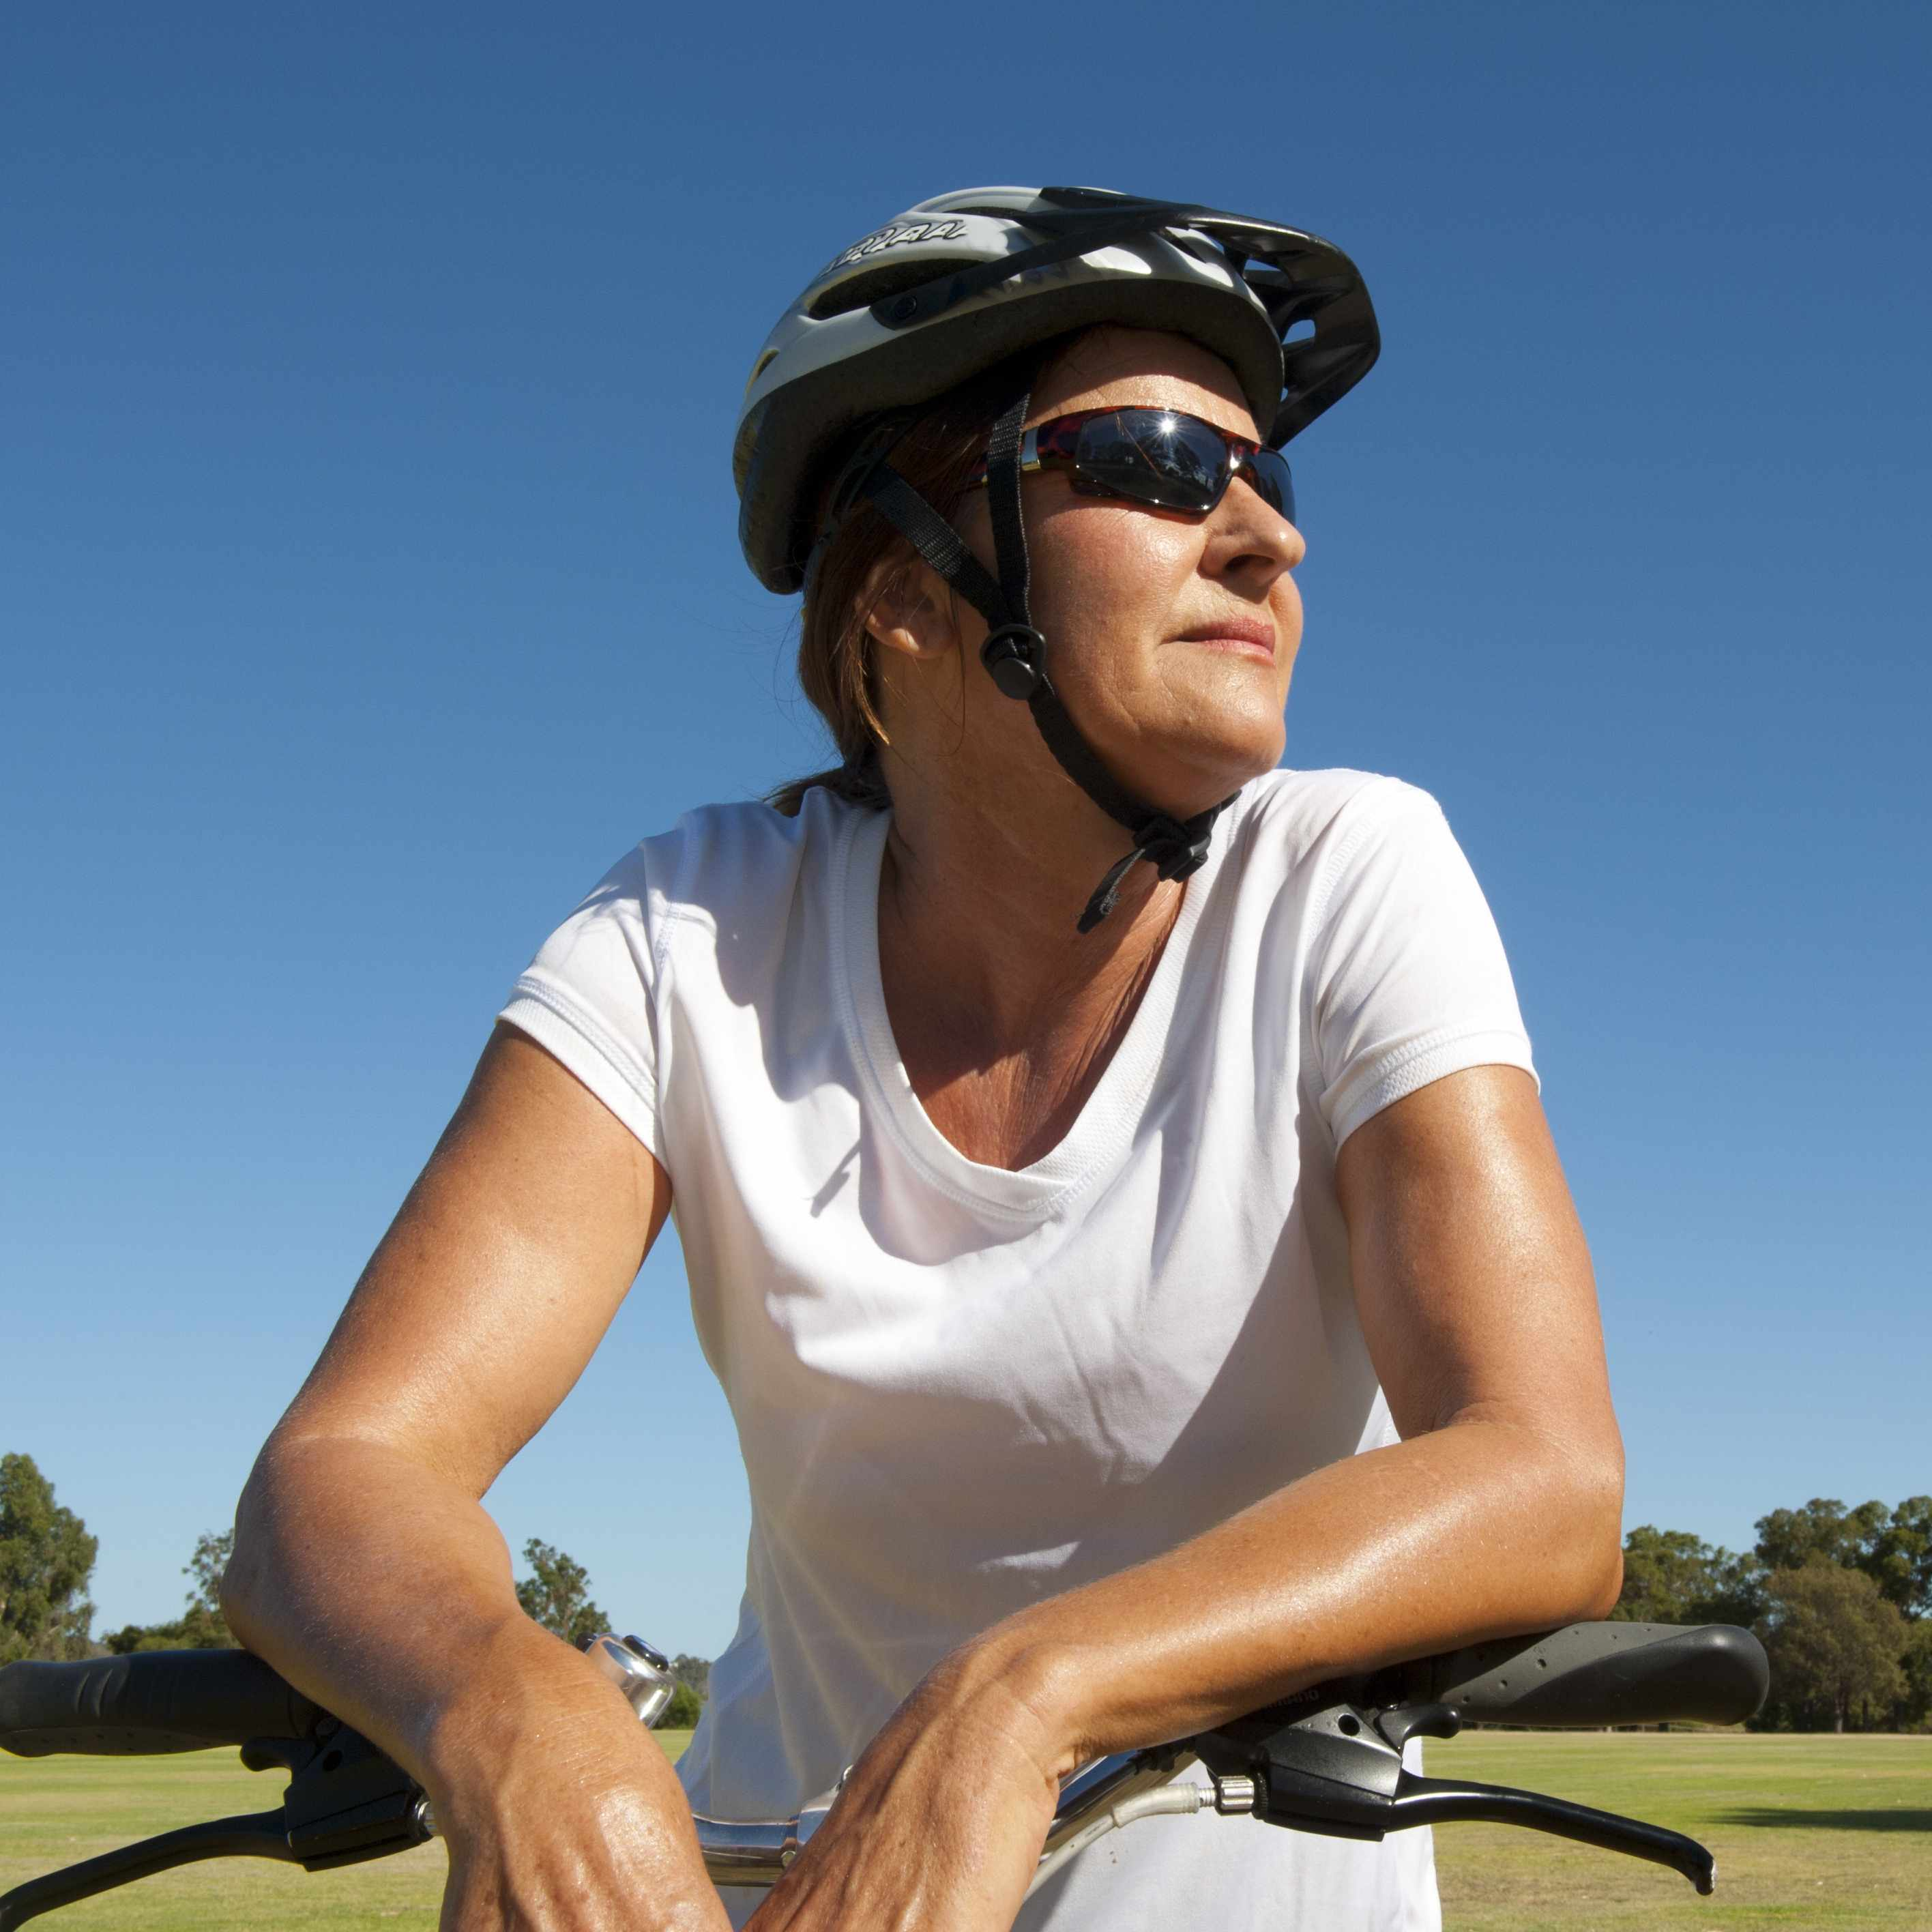 a woman outdoors on a sunny day, with a bike, wearing a helmet and sunglasses, sweating